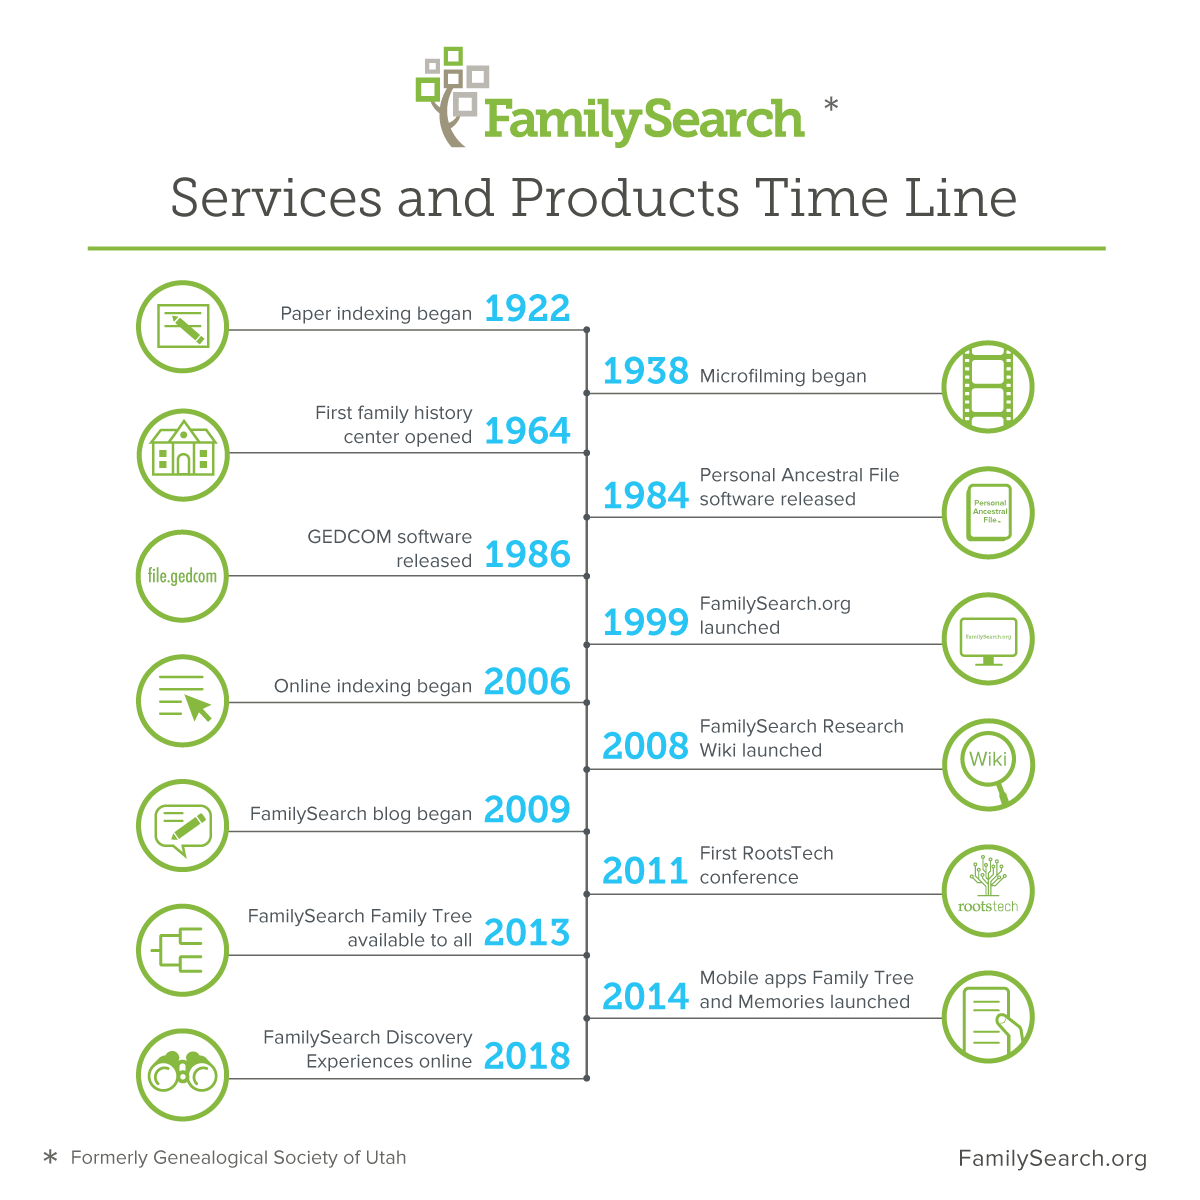 FamilySearch, aka Genealogical Society of Utah, has been helping to create family connections for 125 years.